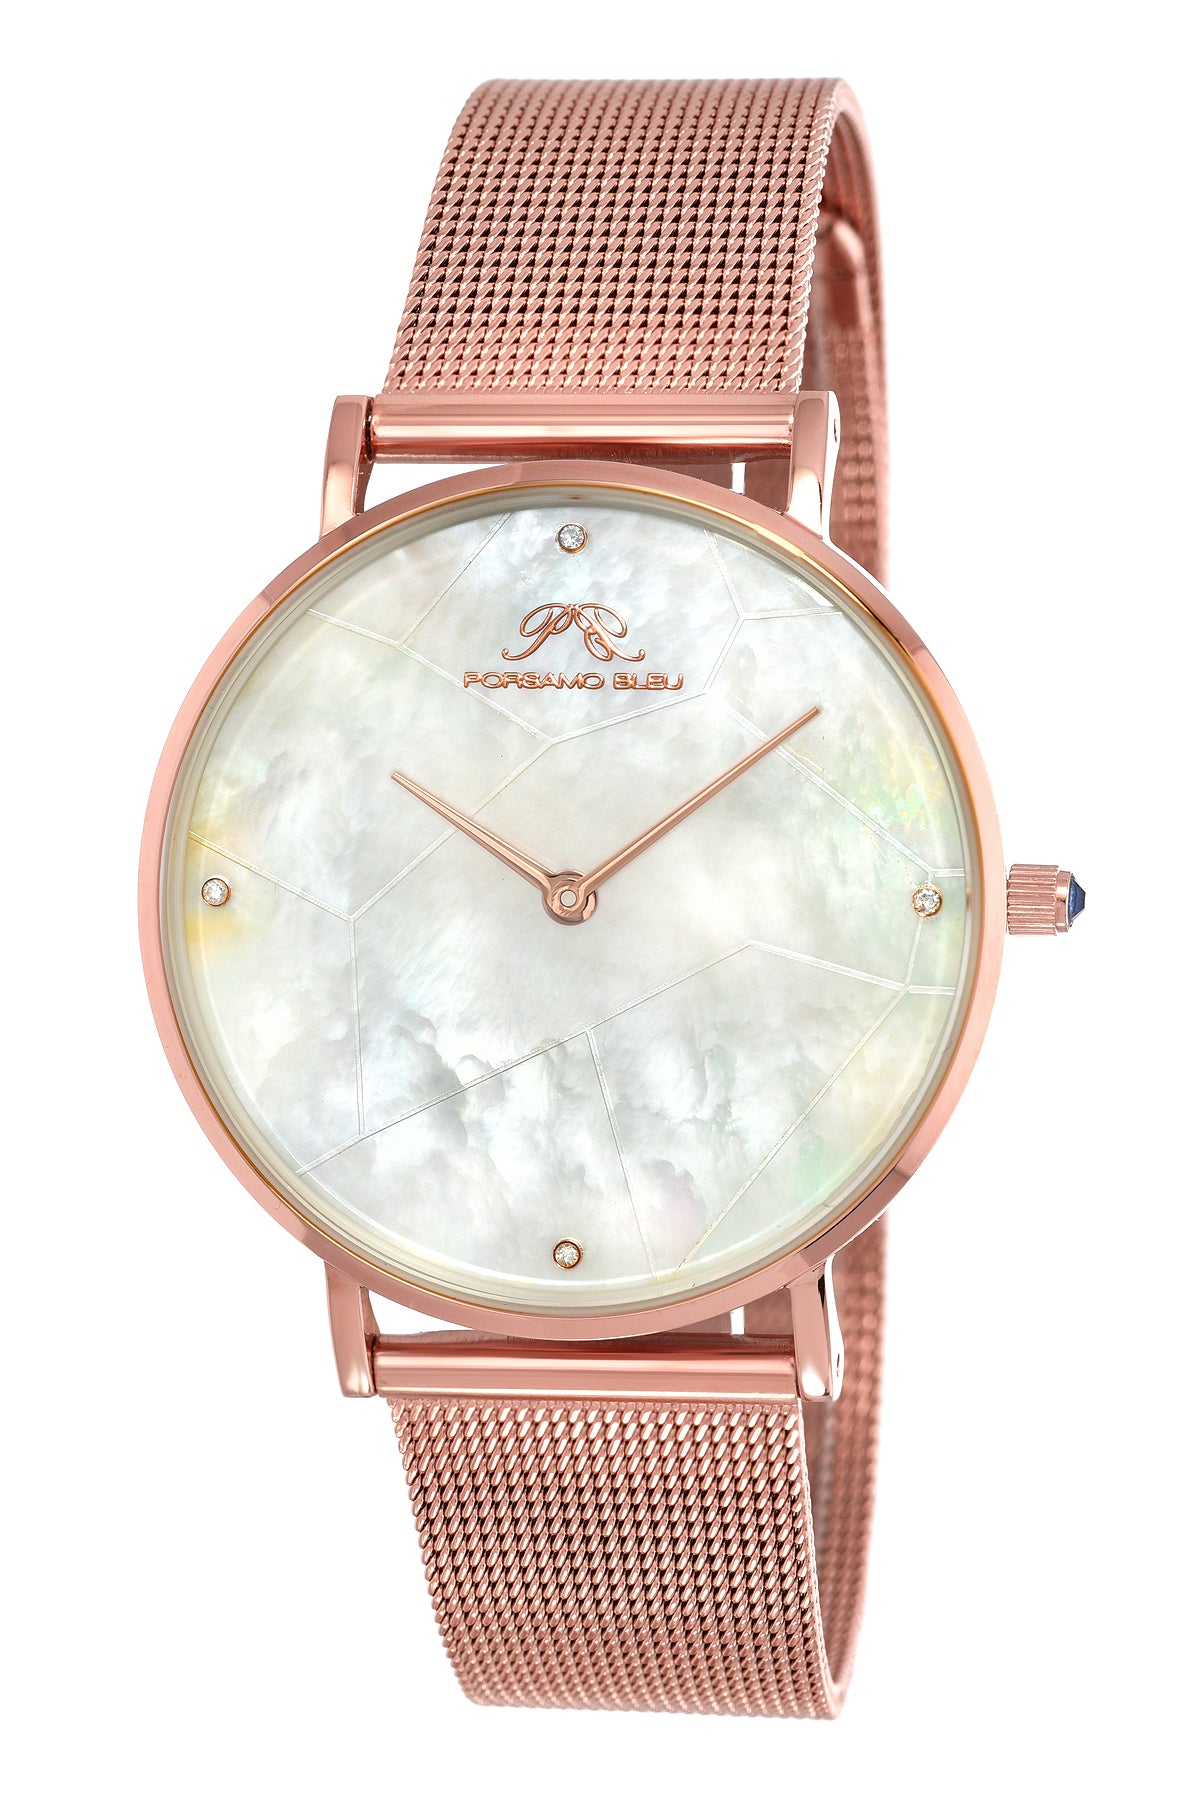 Porsamo Bleu Paloma luxury diamond women's watch, interchangeable bands, rose, white, grey 851CPAS